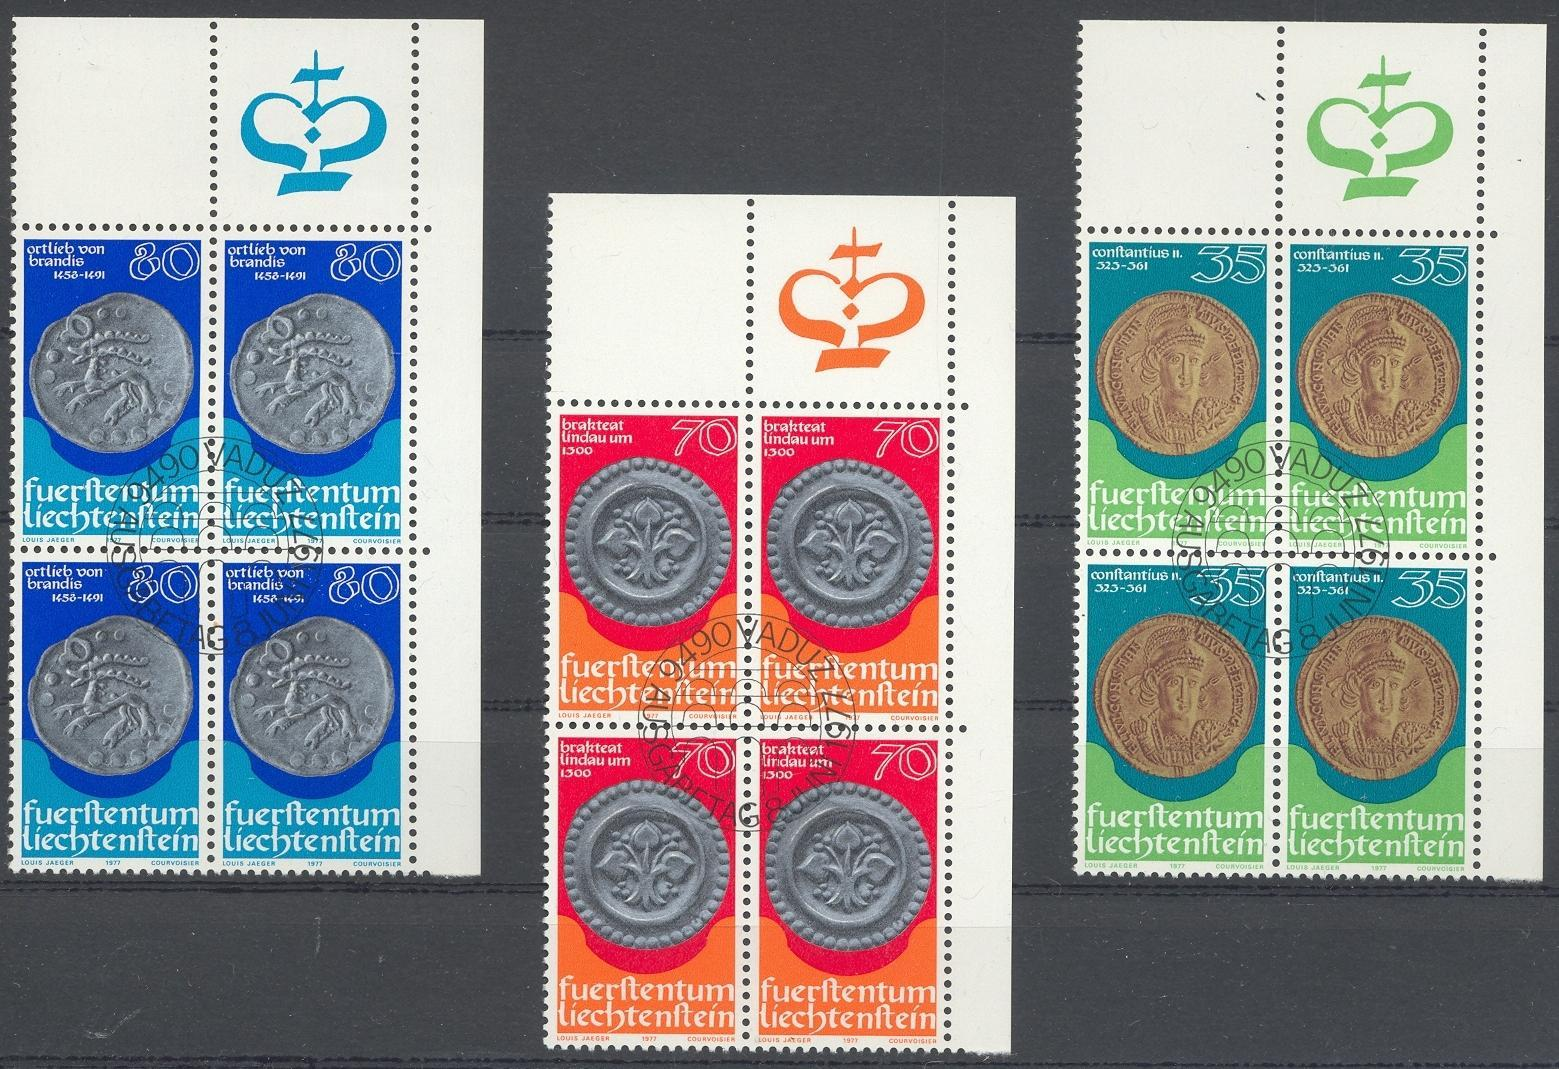 Stamps with Coins / Banknotes from Liechtenstein (image for product #032230)